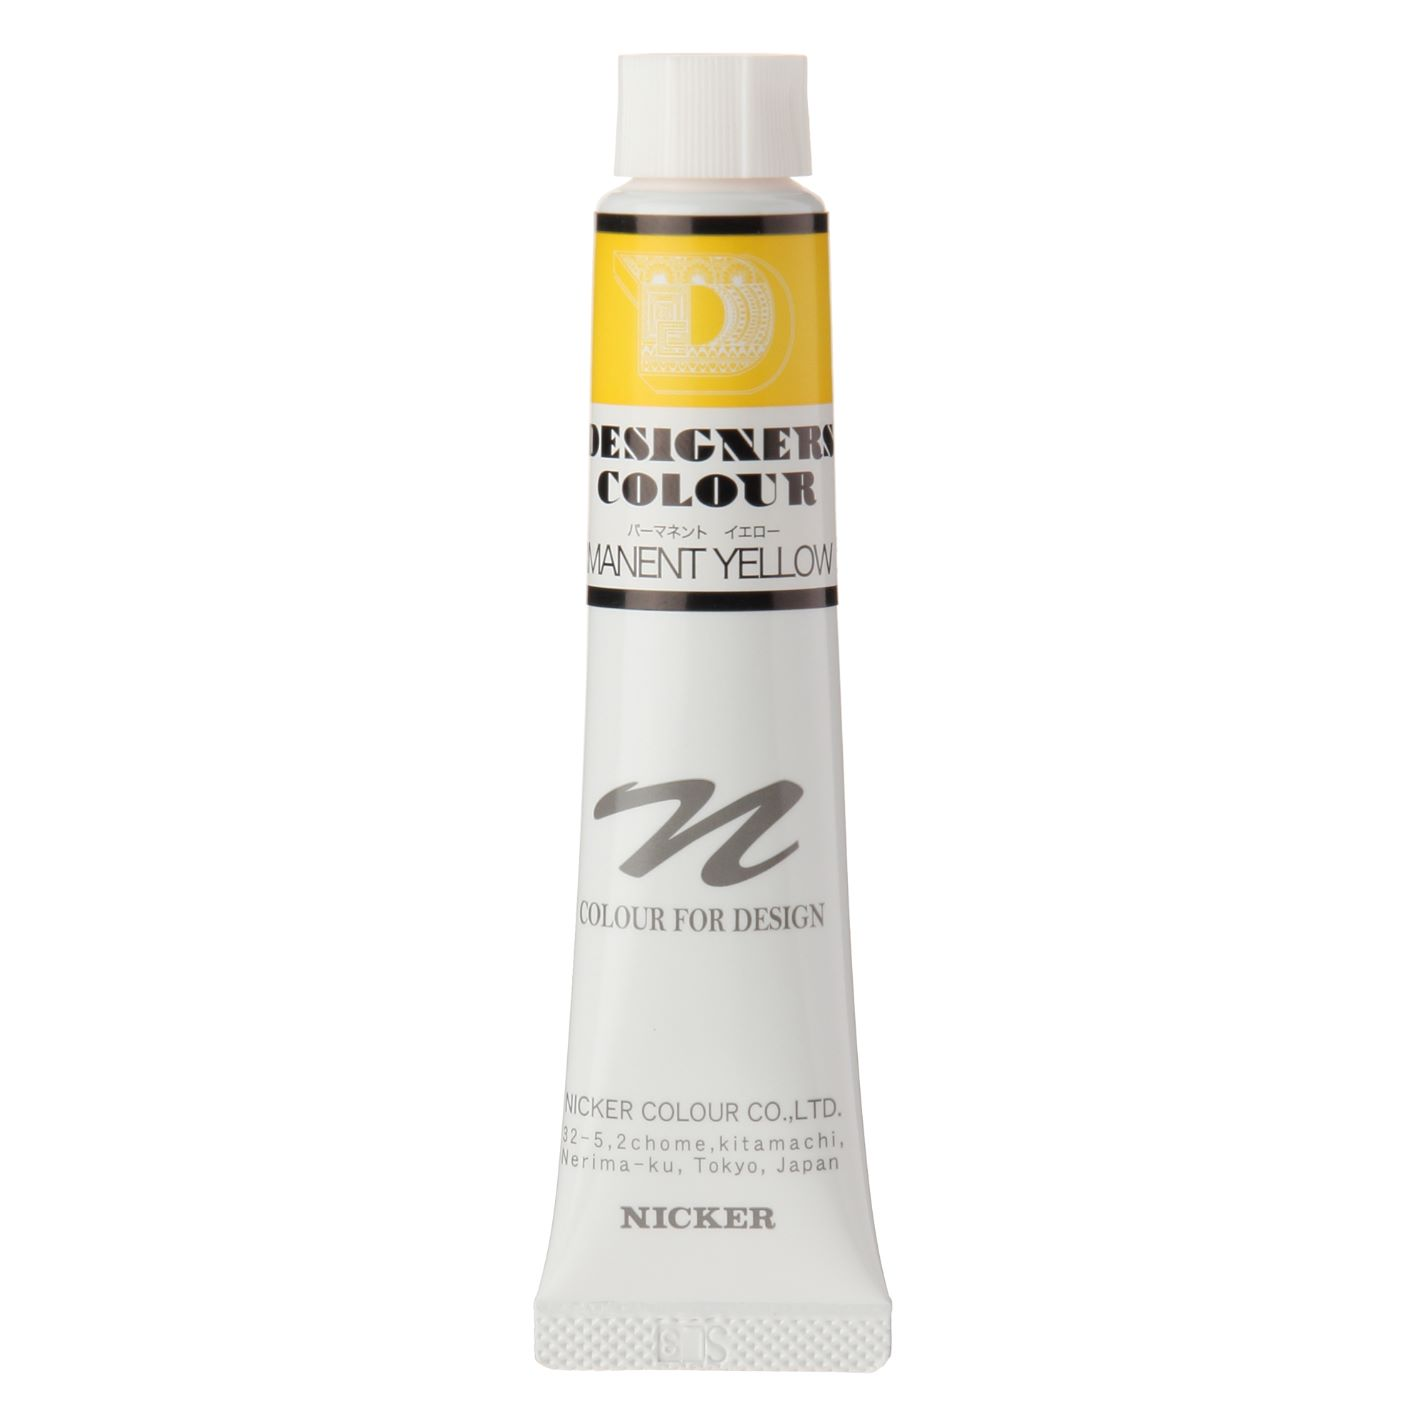 DESIGNERS COLOUR 20ml 504 PERMANENT YELLOW